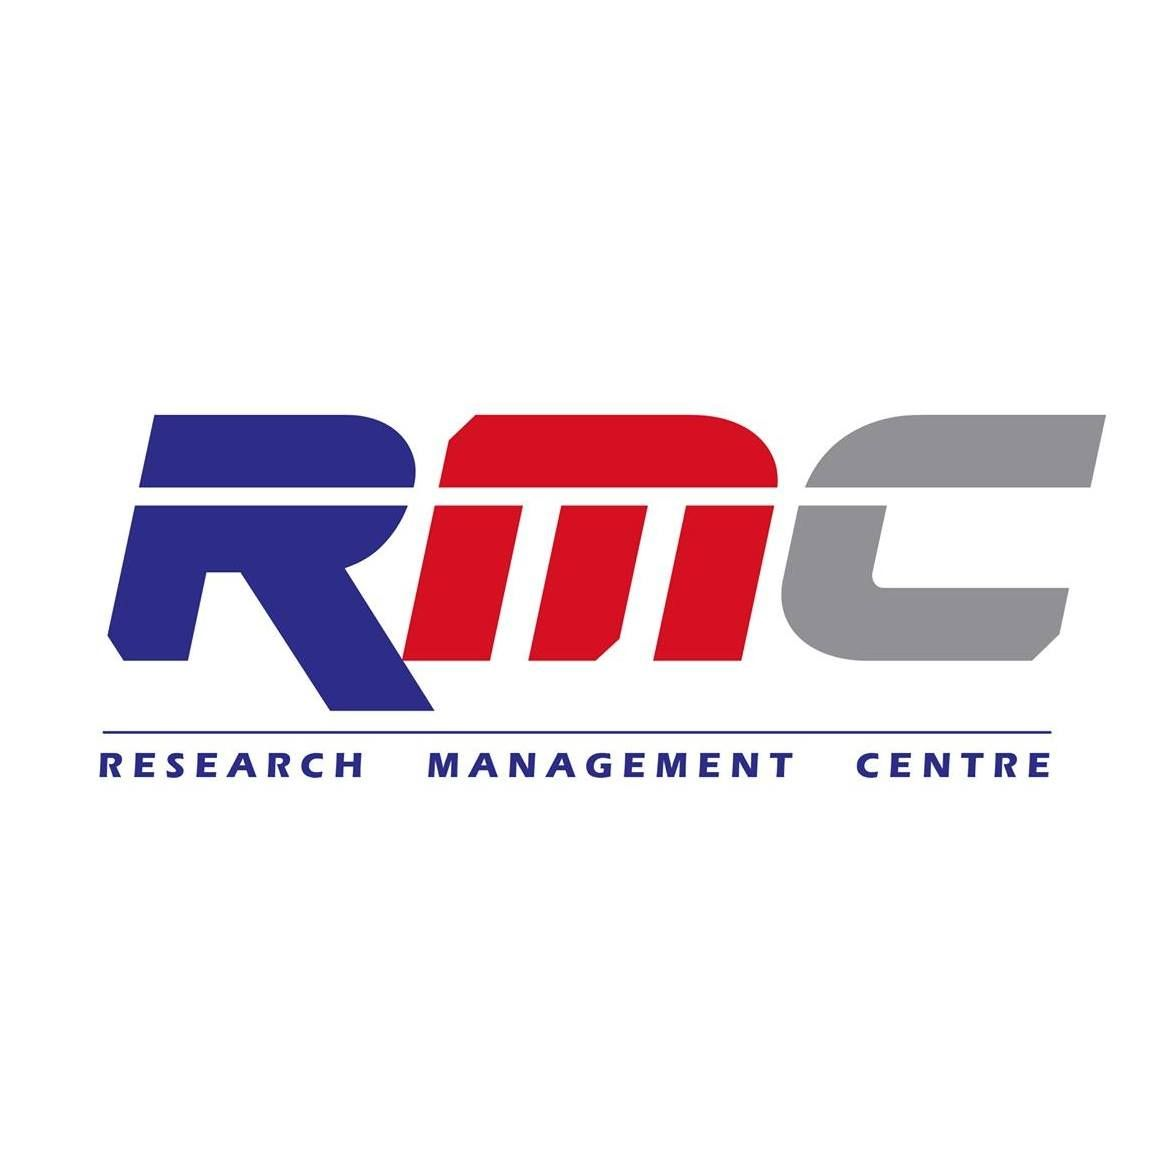 Research Management Centre